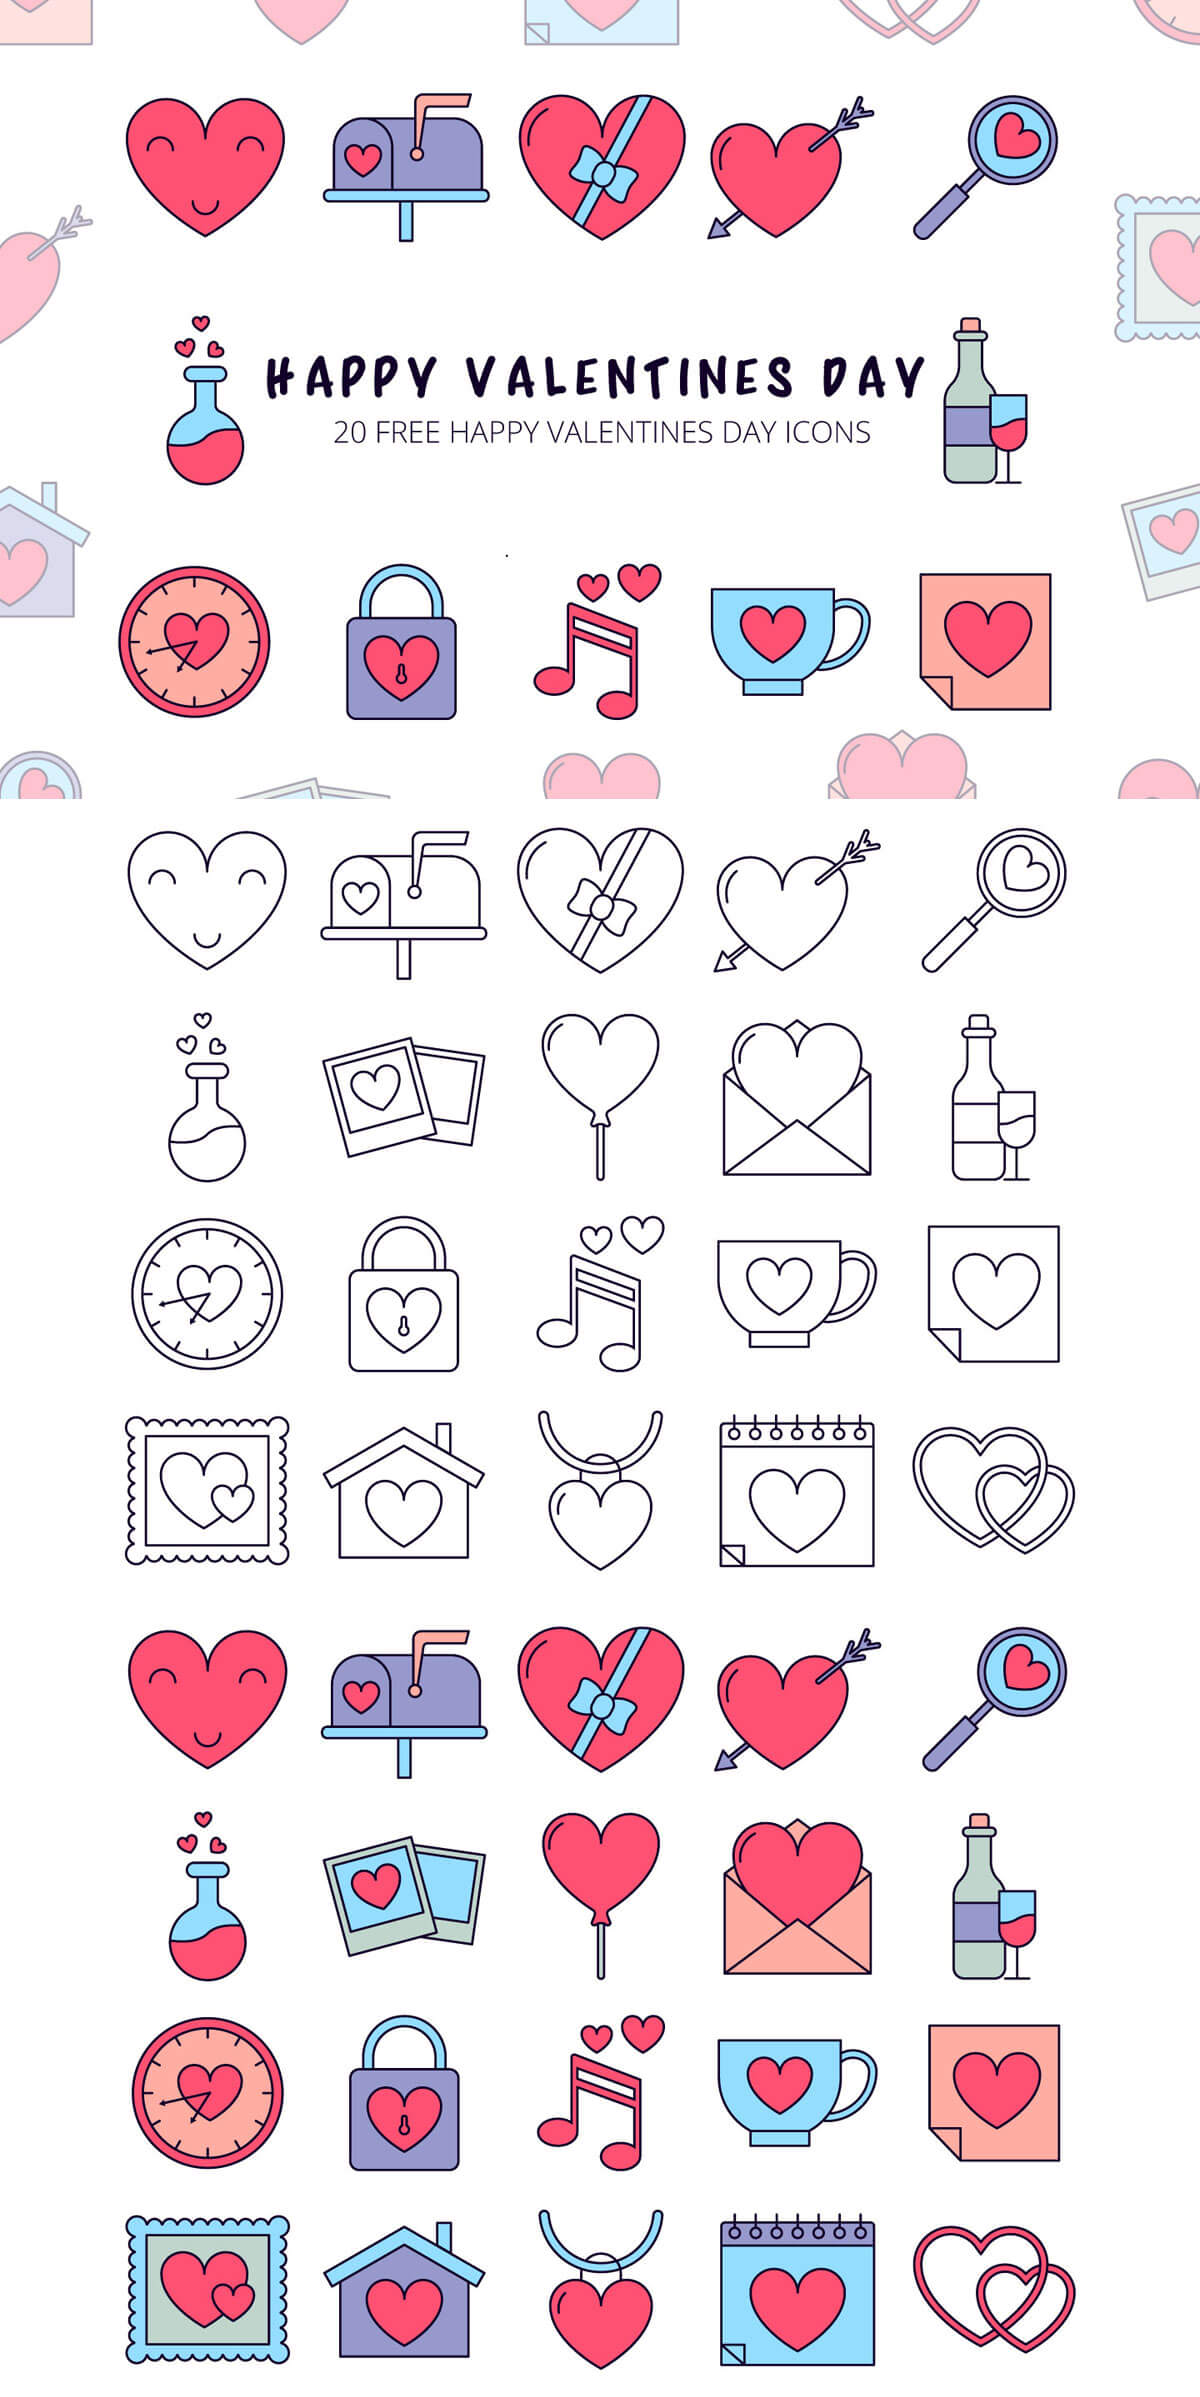 Free Happy Valentines Day Vector Icon Set